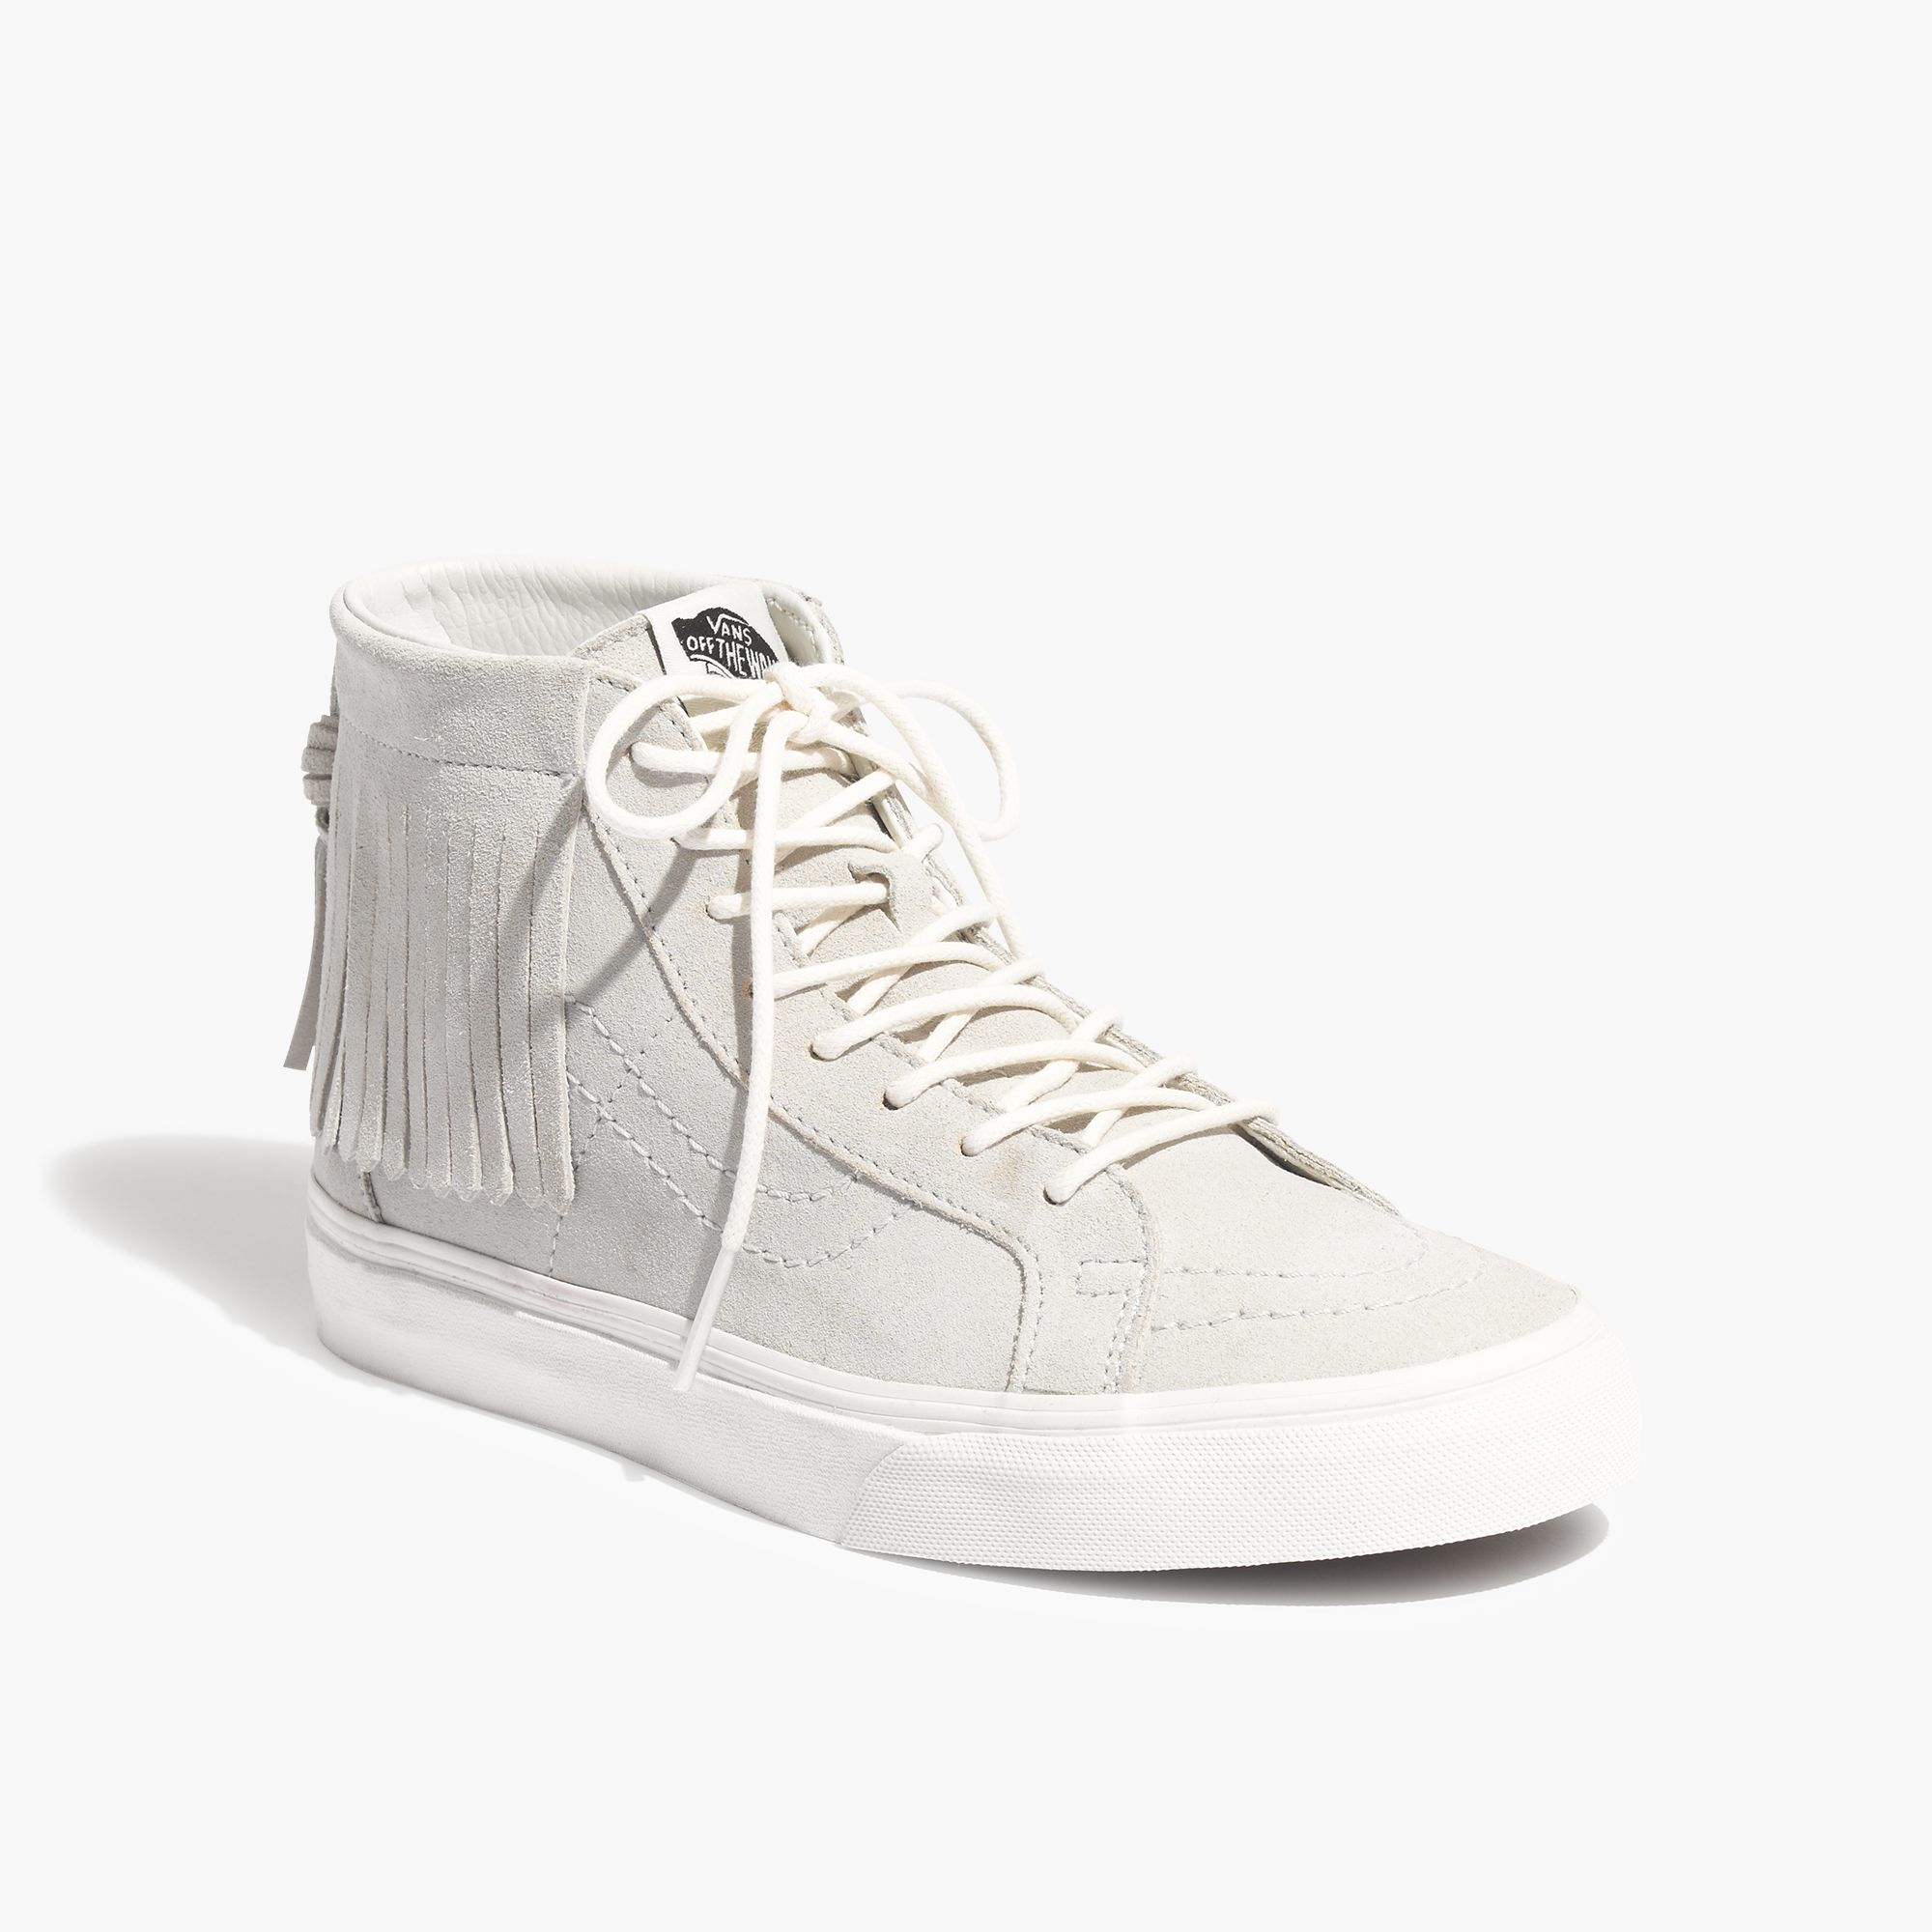 8afe8c0210 Lyst - Madewell Vans® Sk8-hi Moccasin High-top Sneakers in Gray